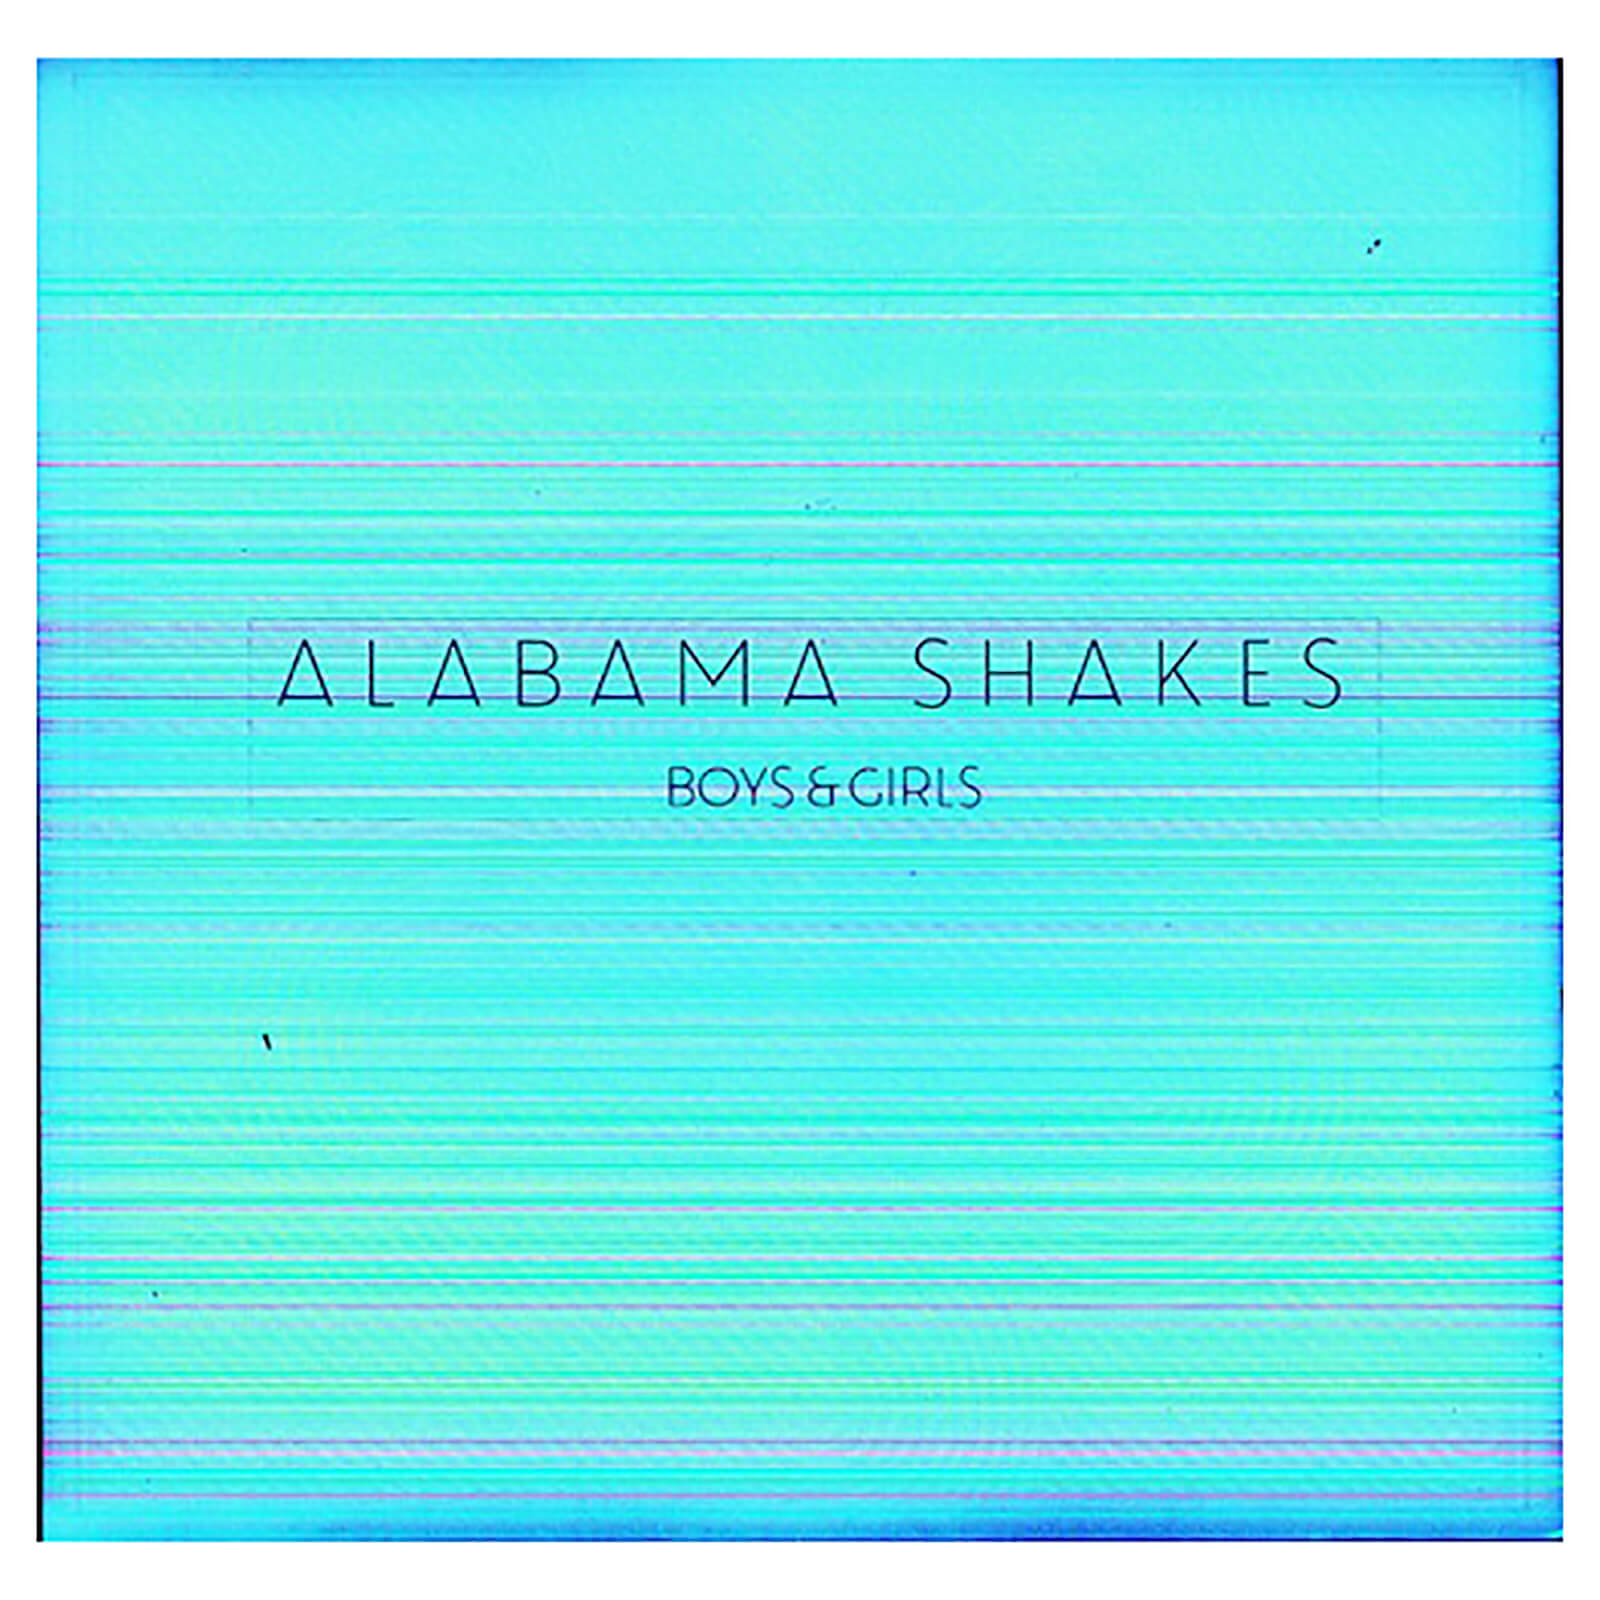 Alabama Shakes - Boys & Girls - Vinyl